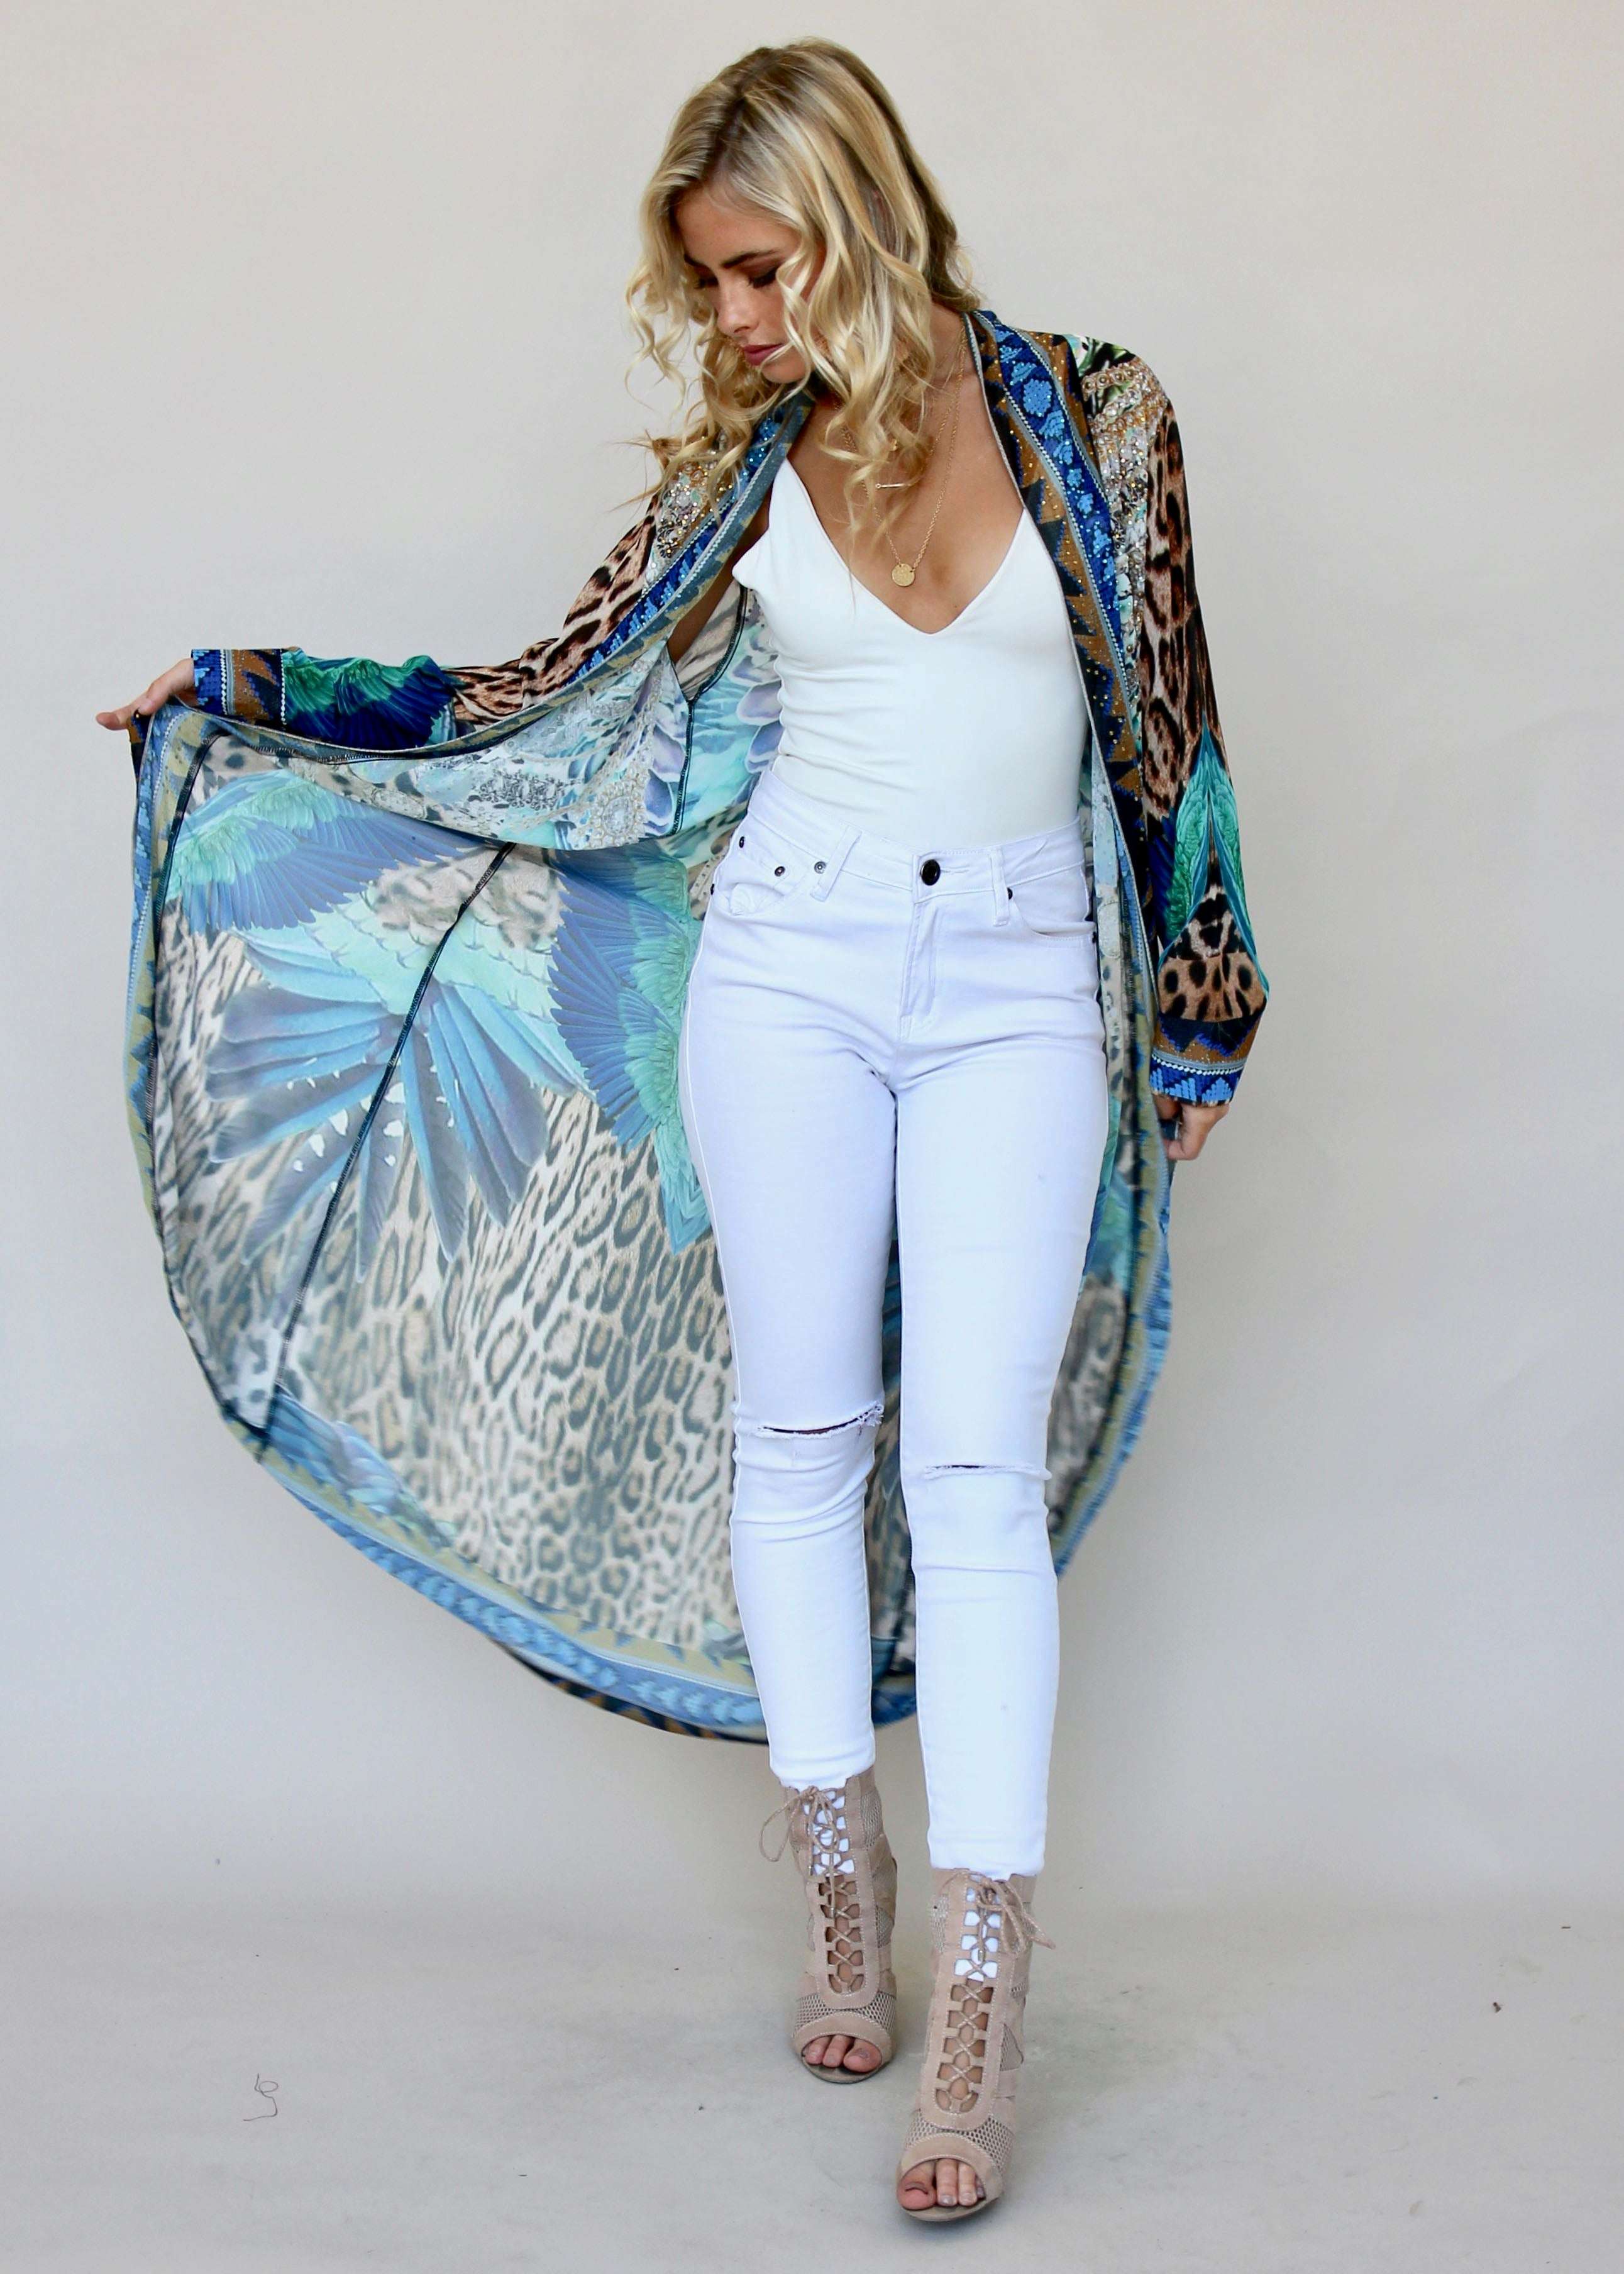 Worlds Collide Chiffon Cape - Turquoise Summer